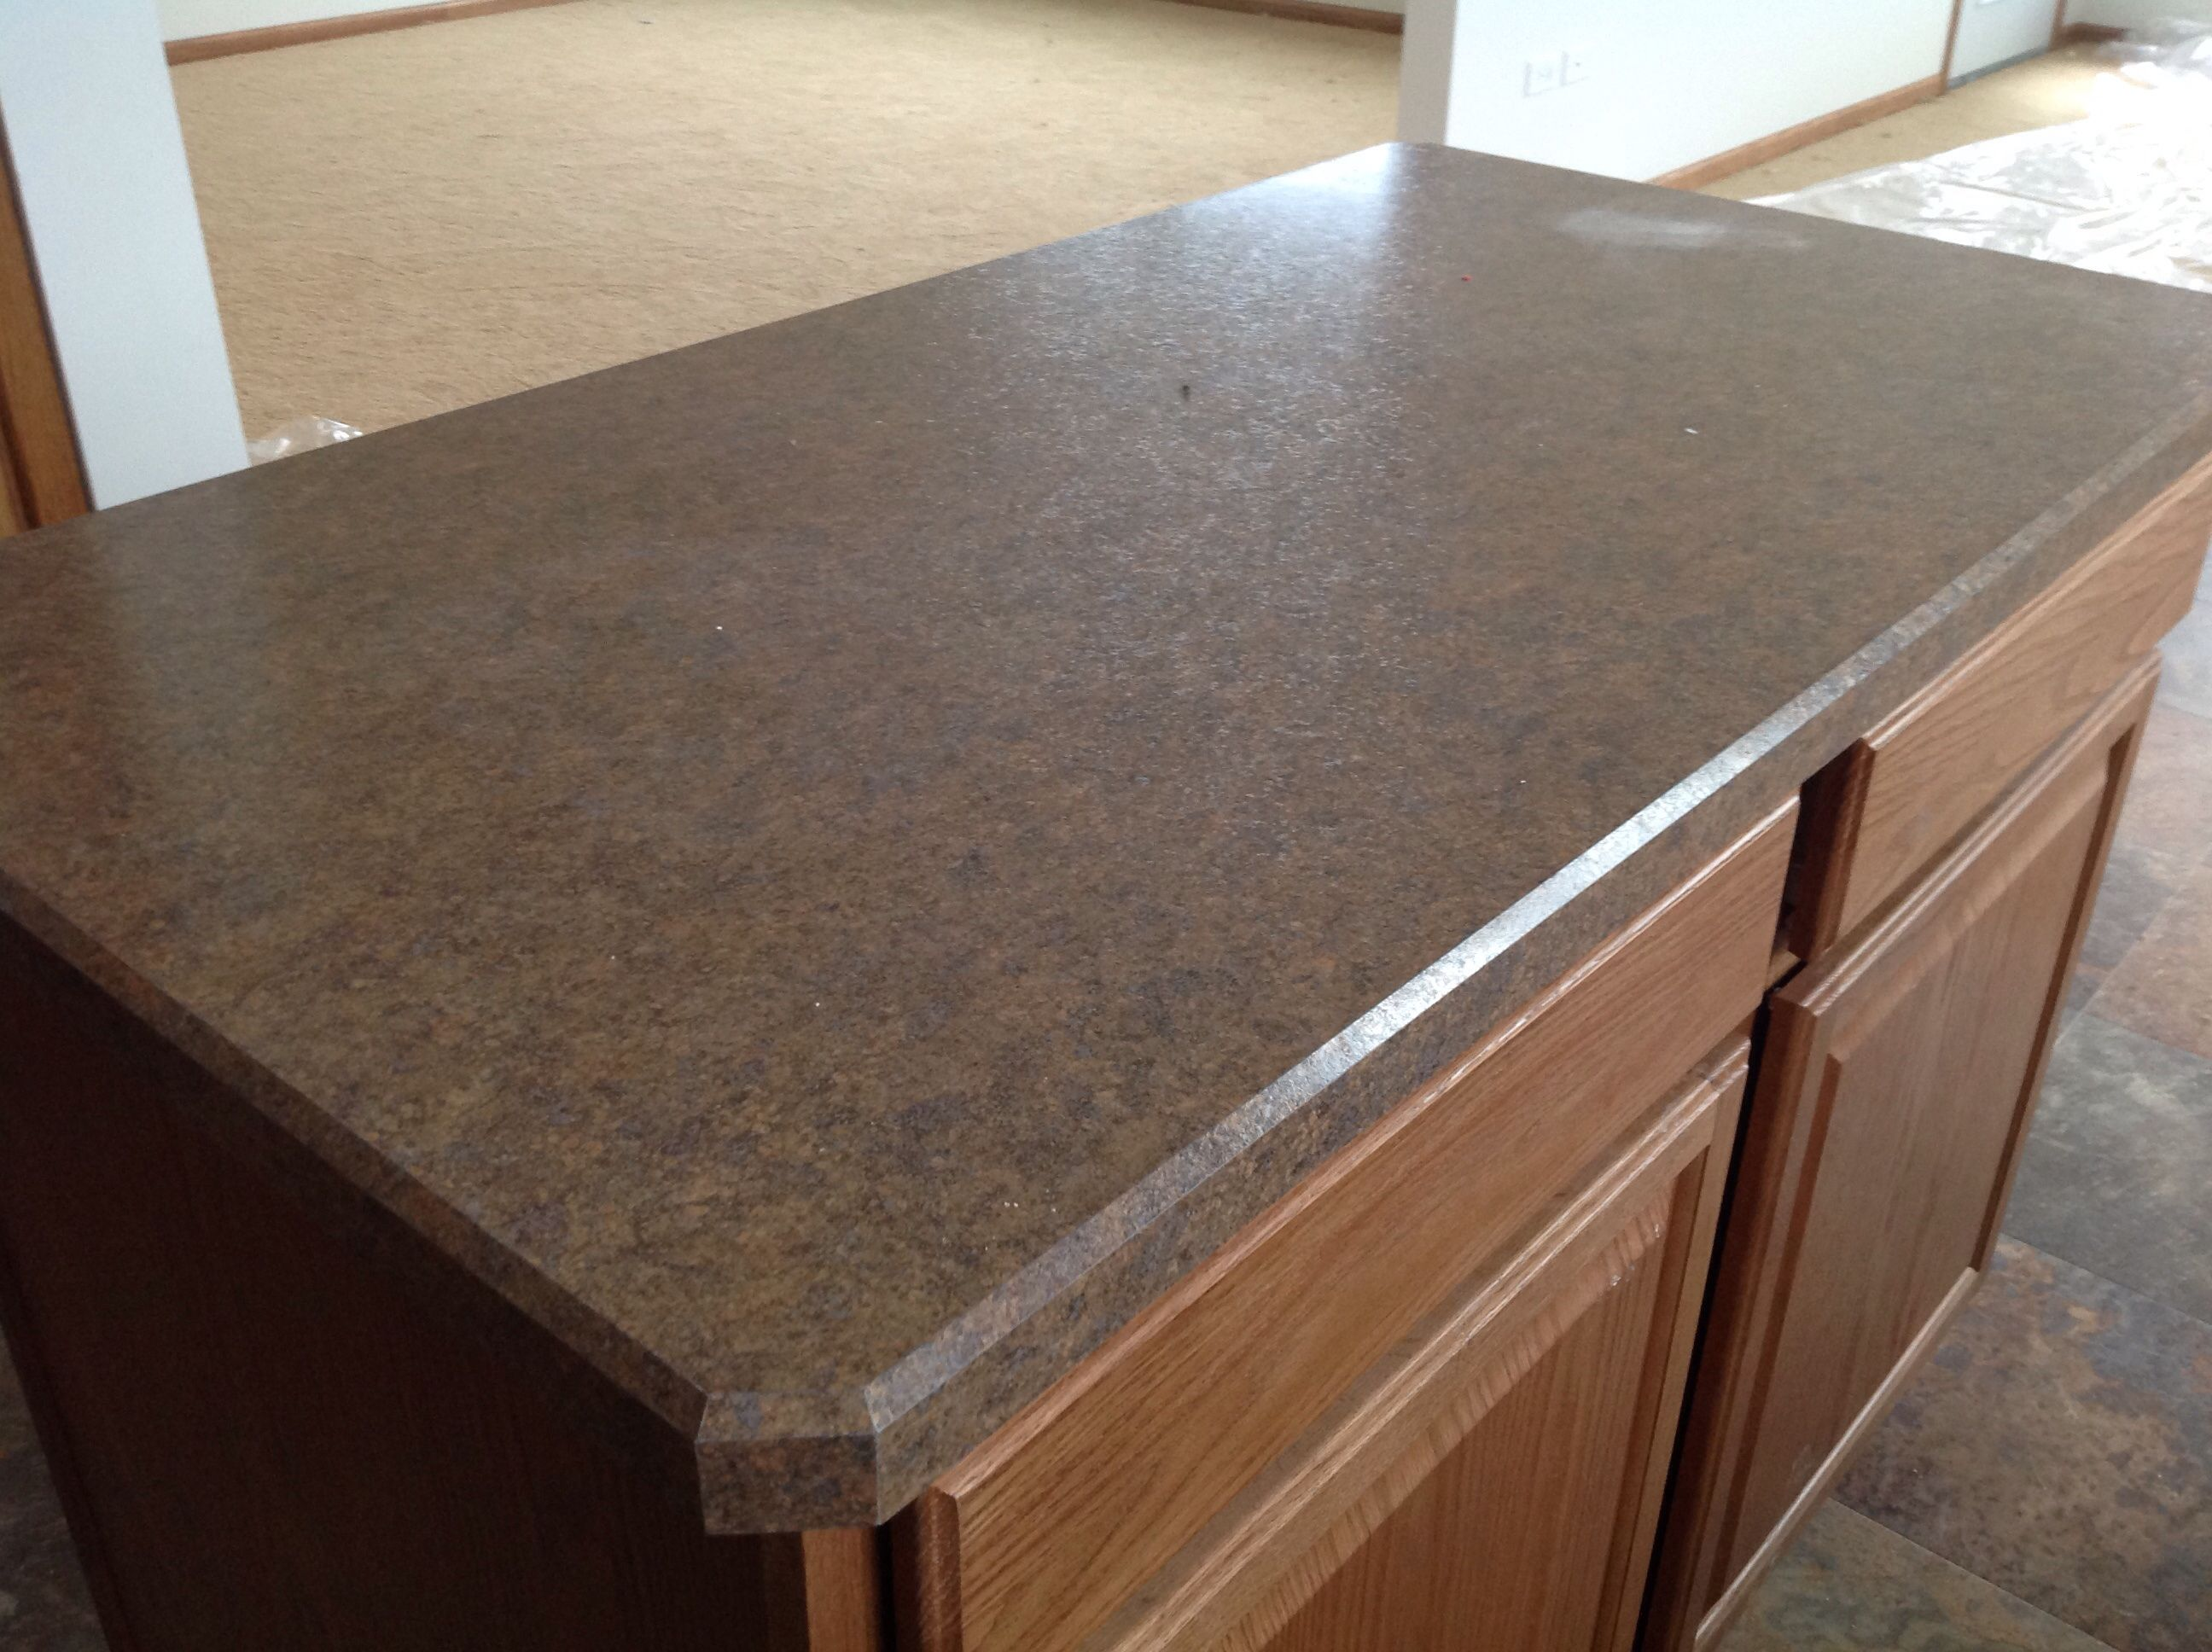 Wilsonart HD Countertop With Beveled Edge Lago Vista, Lockport   By Hartz  Homes